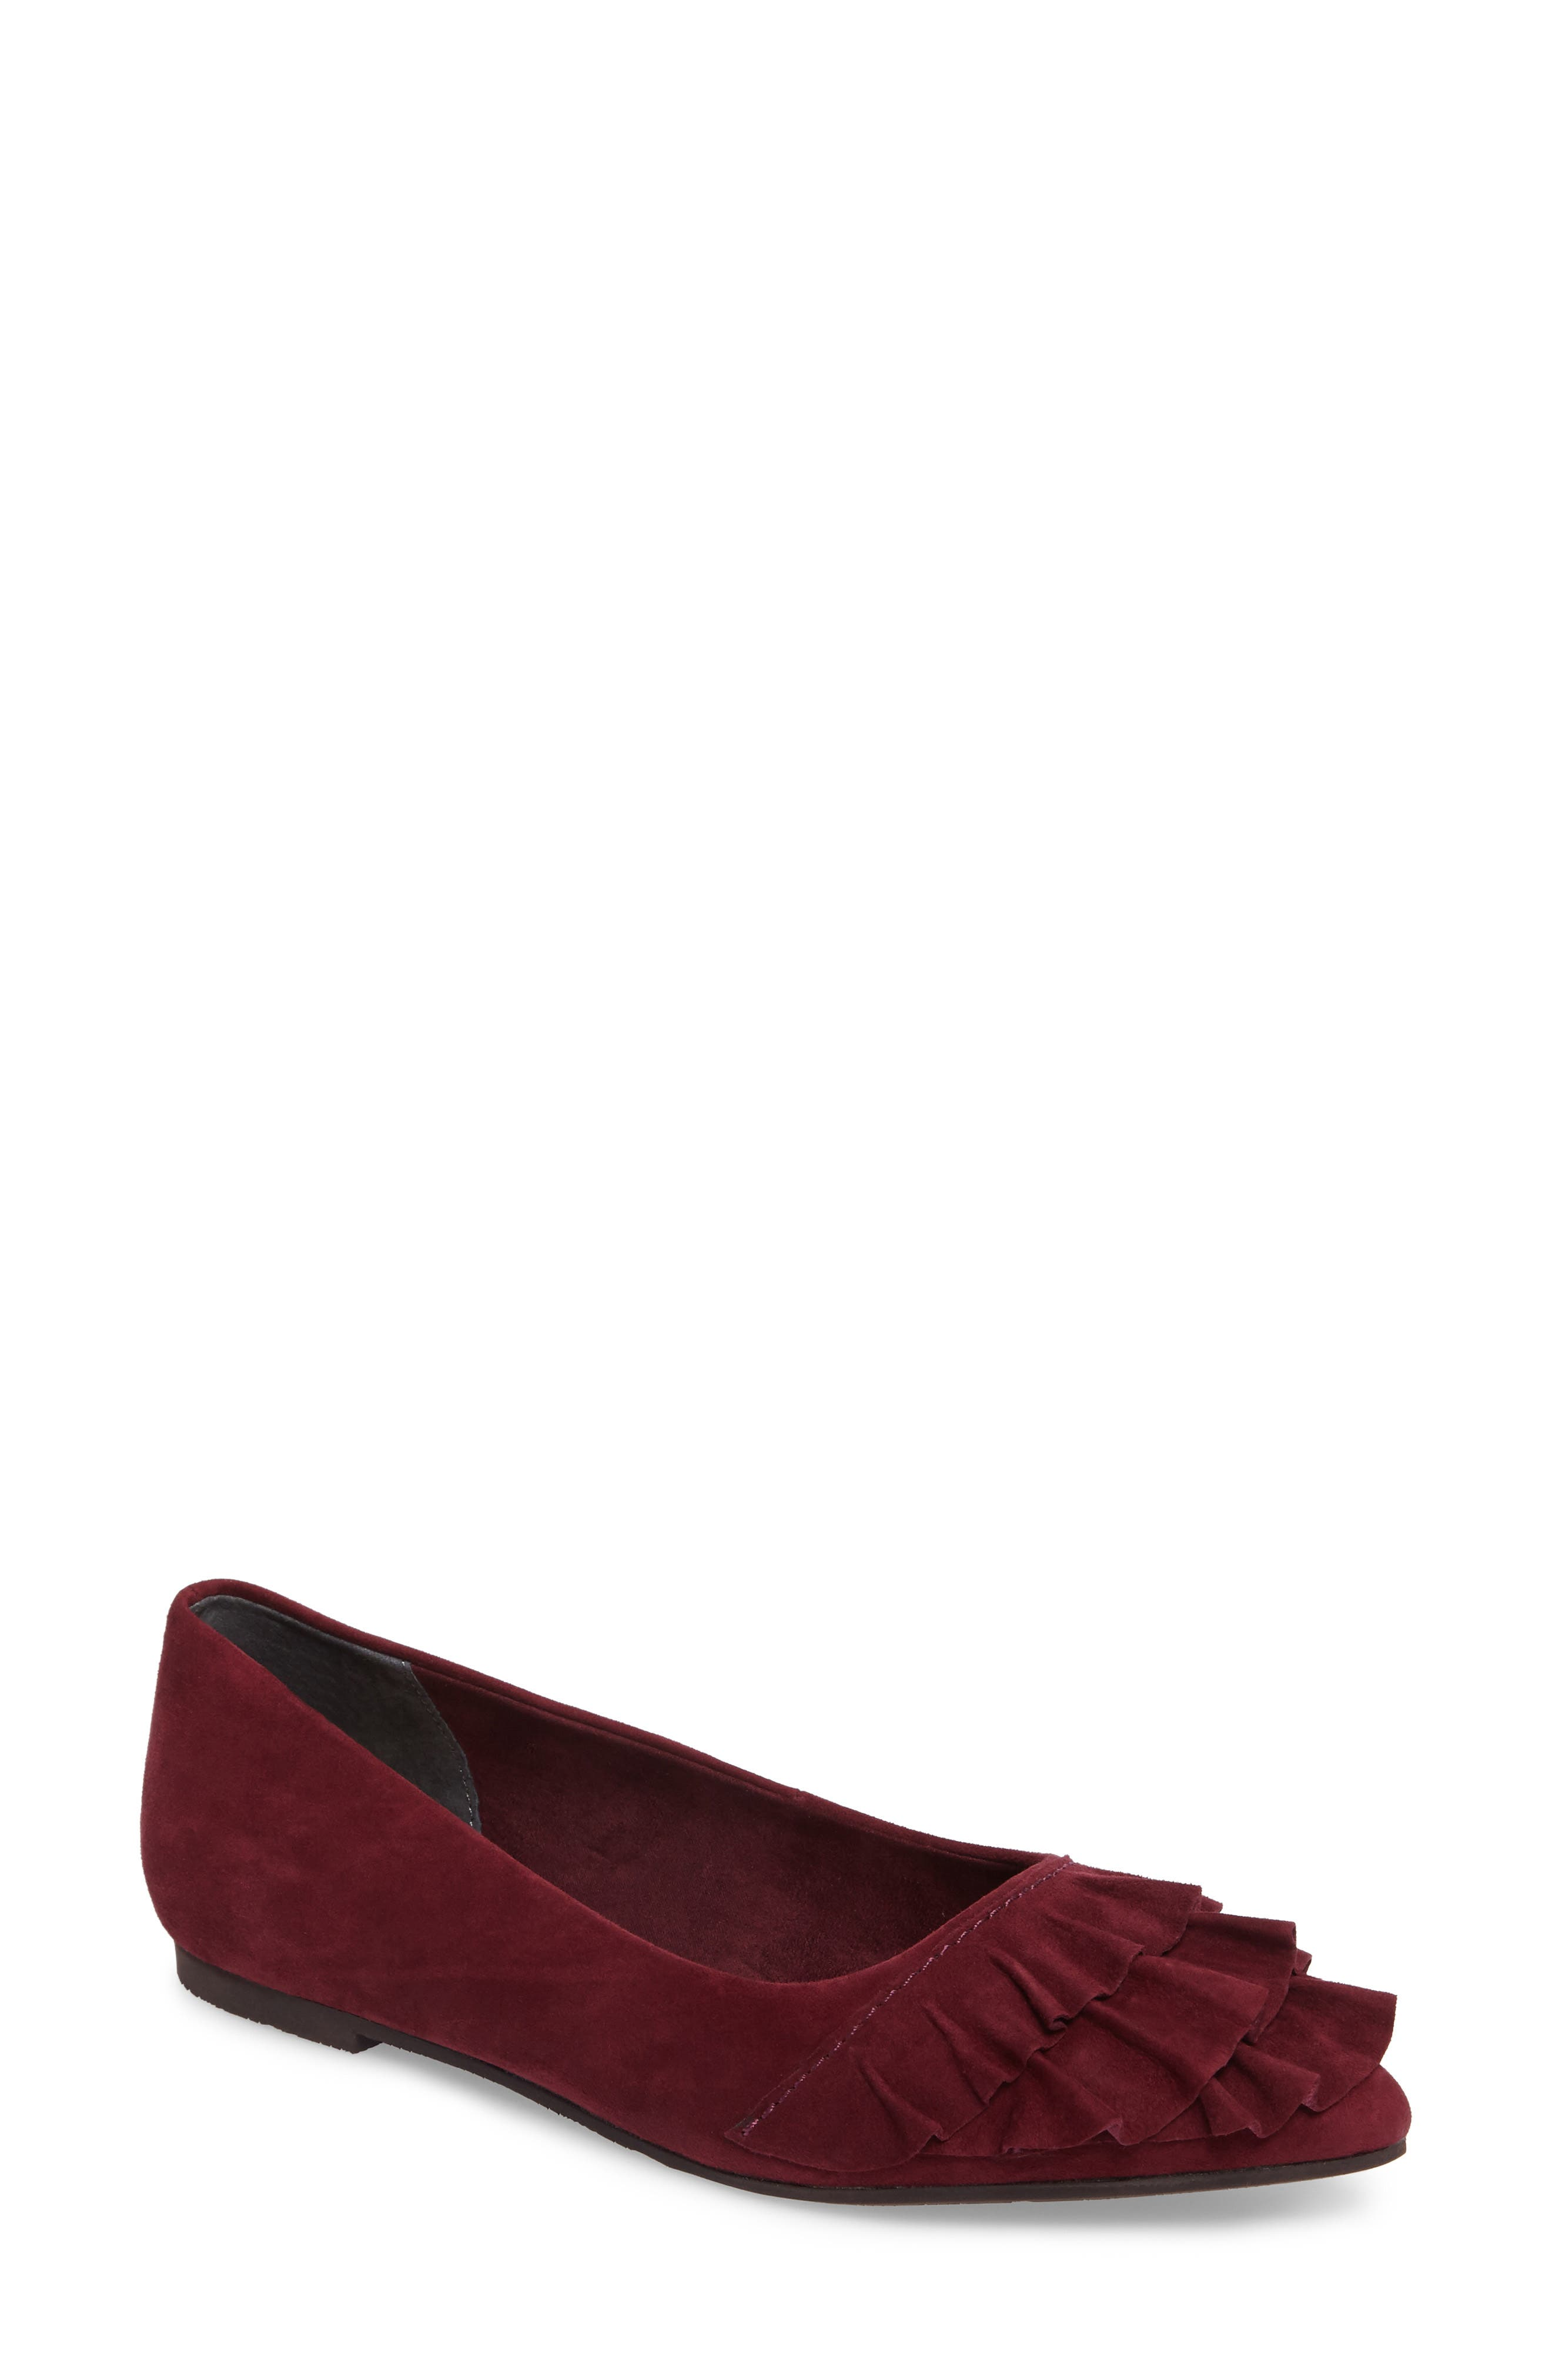 Downstage Pointy Toe Flat,                             Main thumbnail 1, color,                             Burgundy Suede